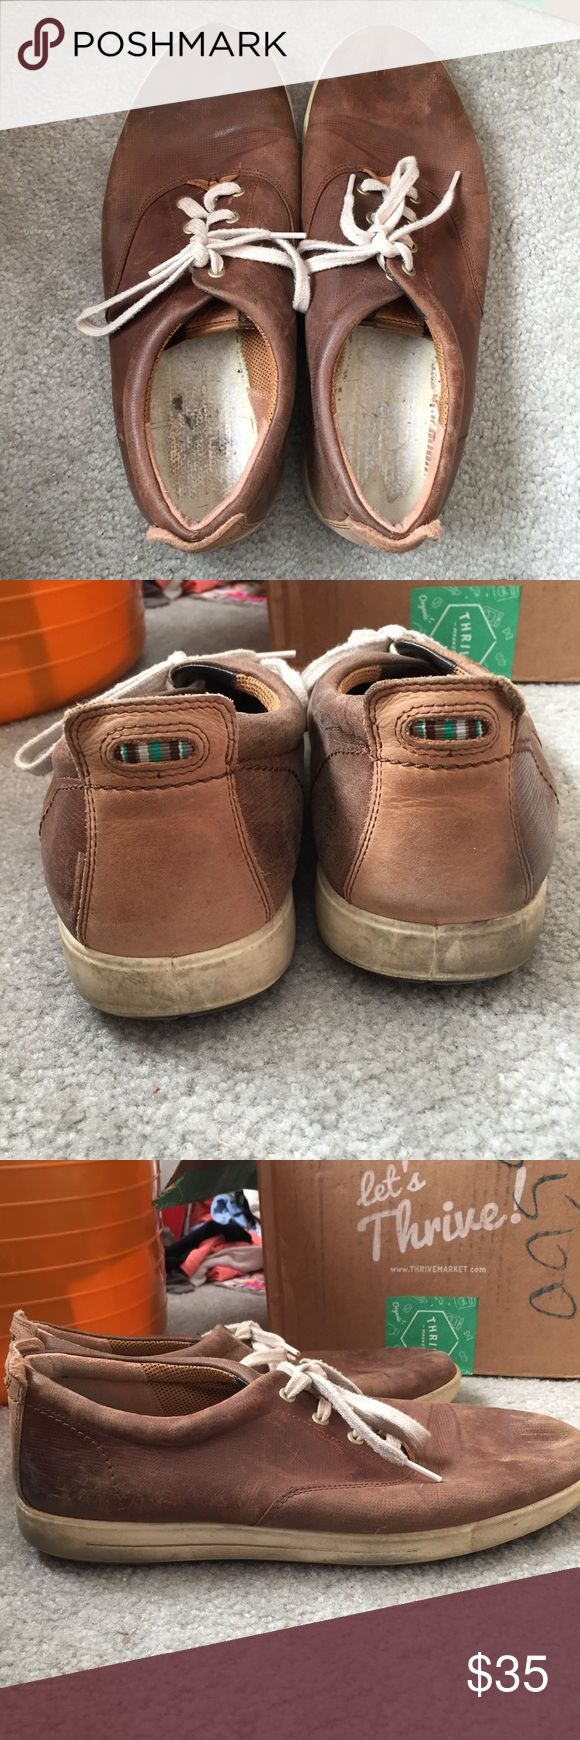 Ecco brown leather sneakers Sole has been taken out but can easily be replaced. In grey condition with lots of life left! Ecco Shoes Sneakers